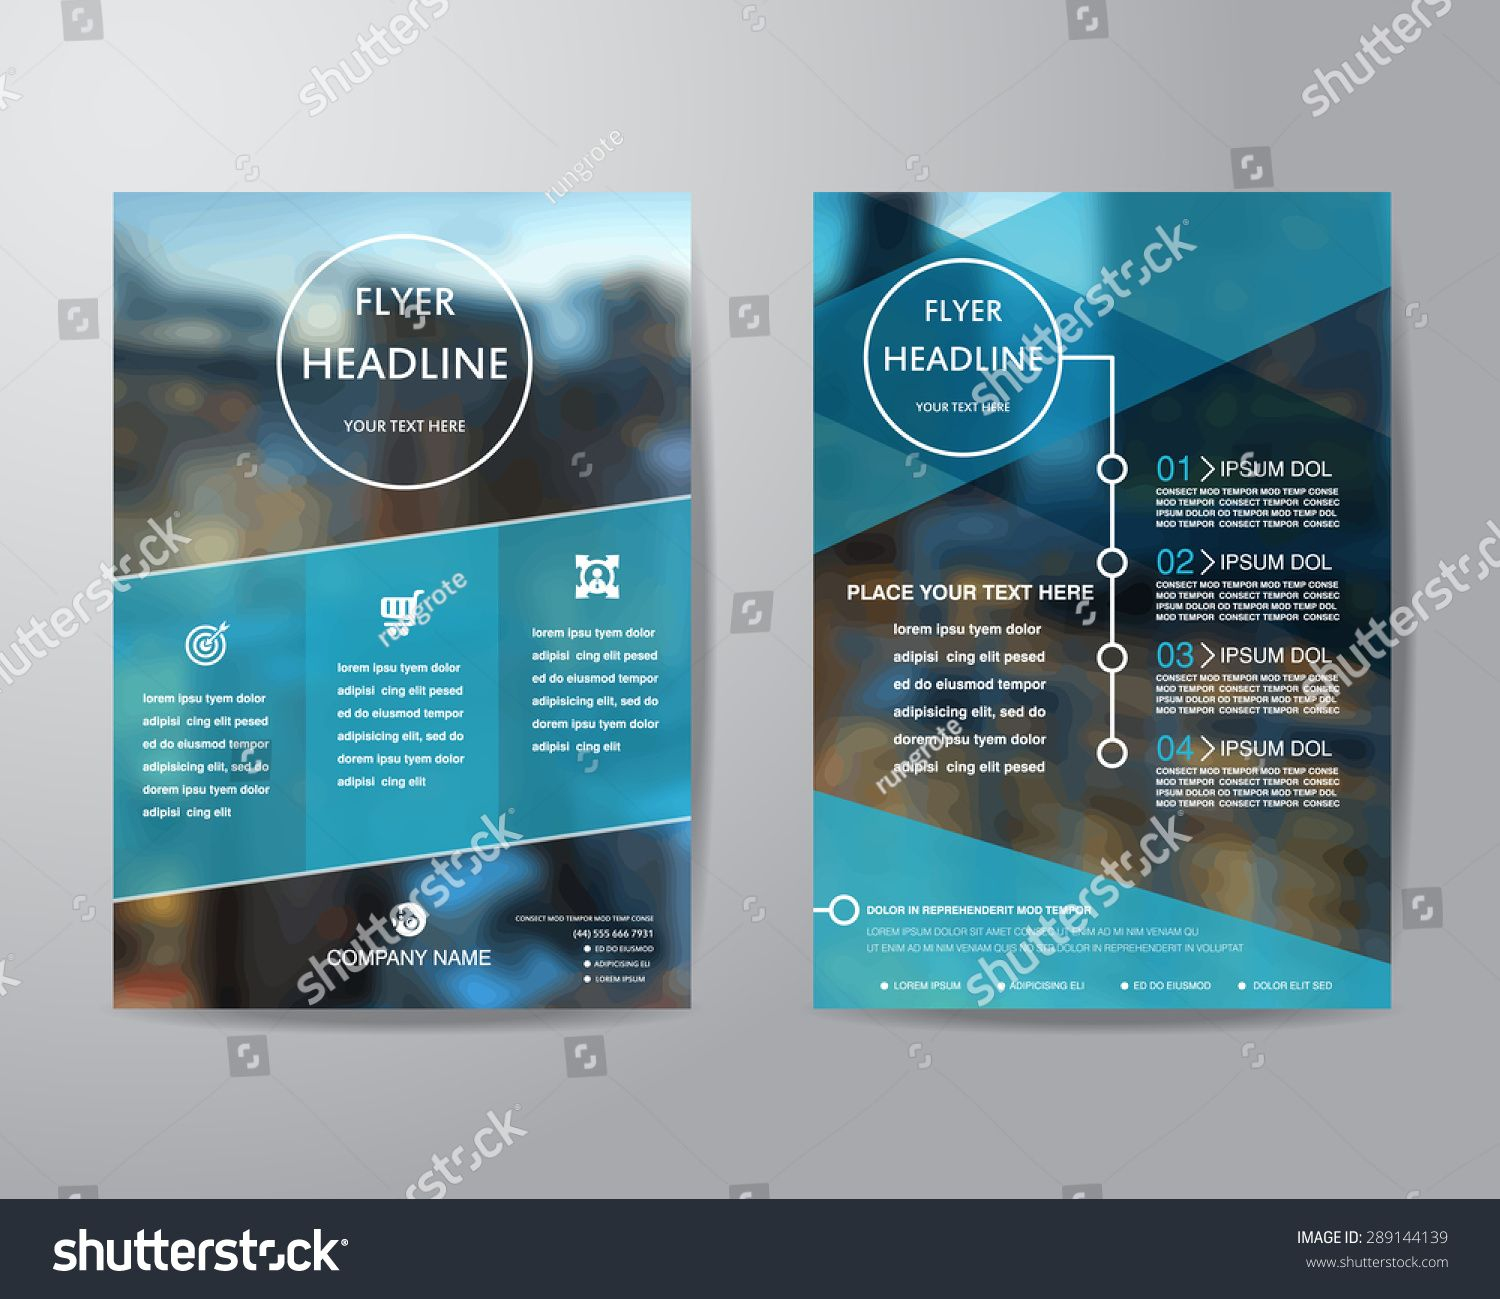 business brochure flyer design layout template in A4 size with blur